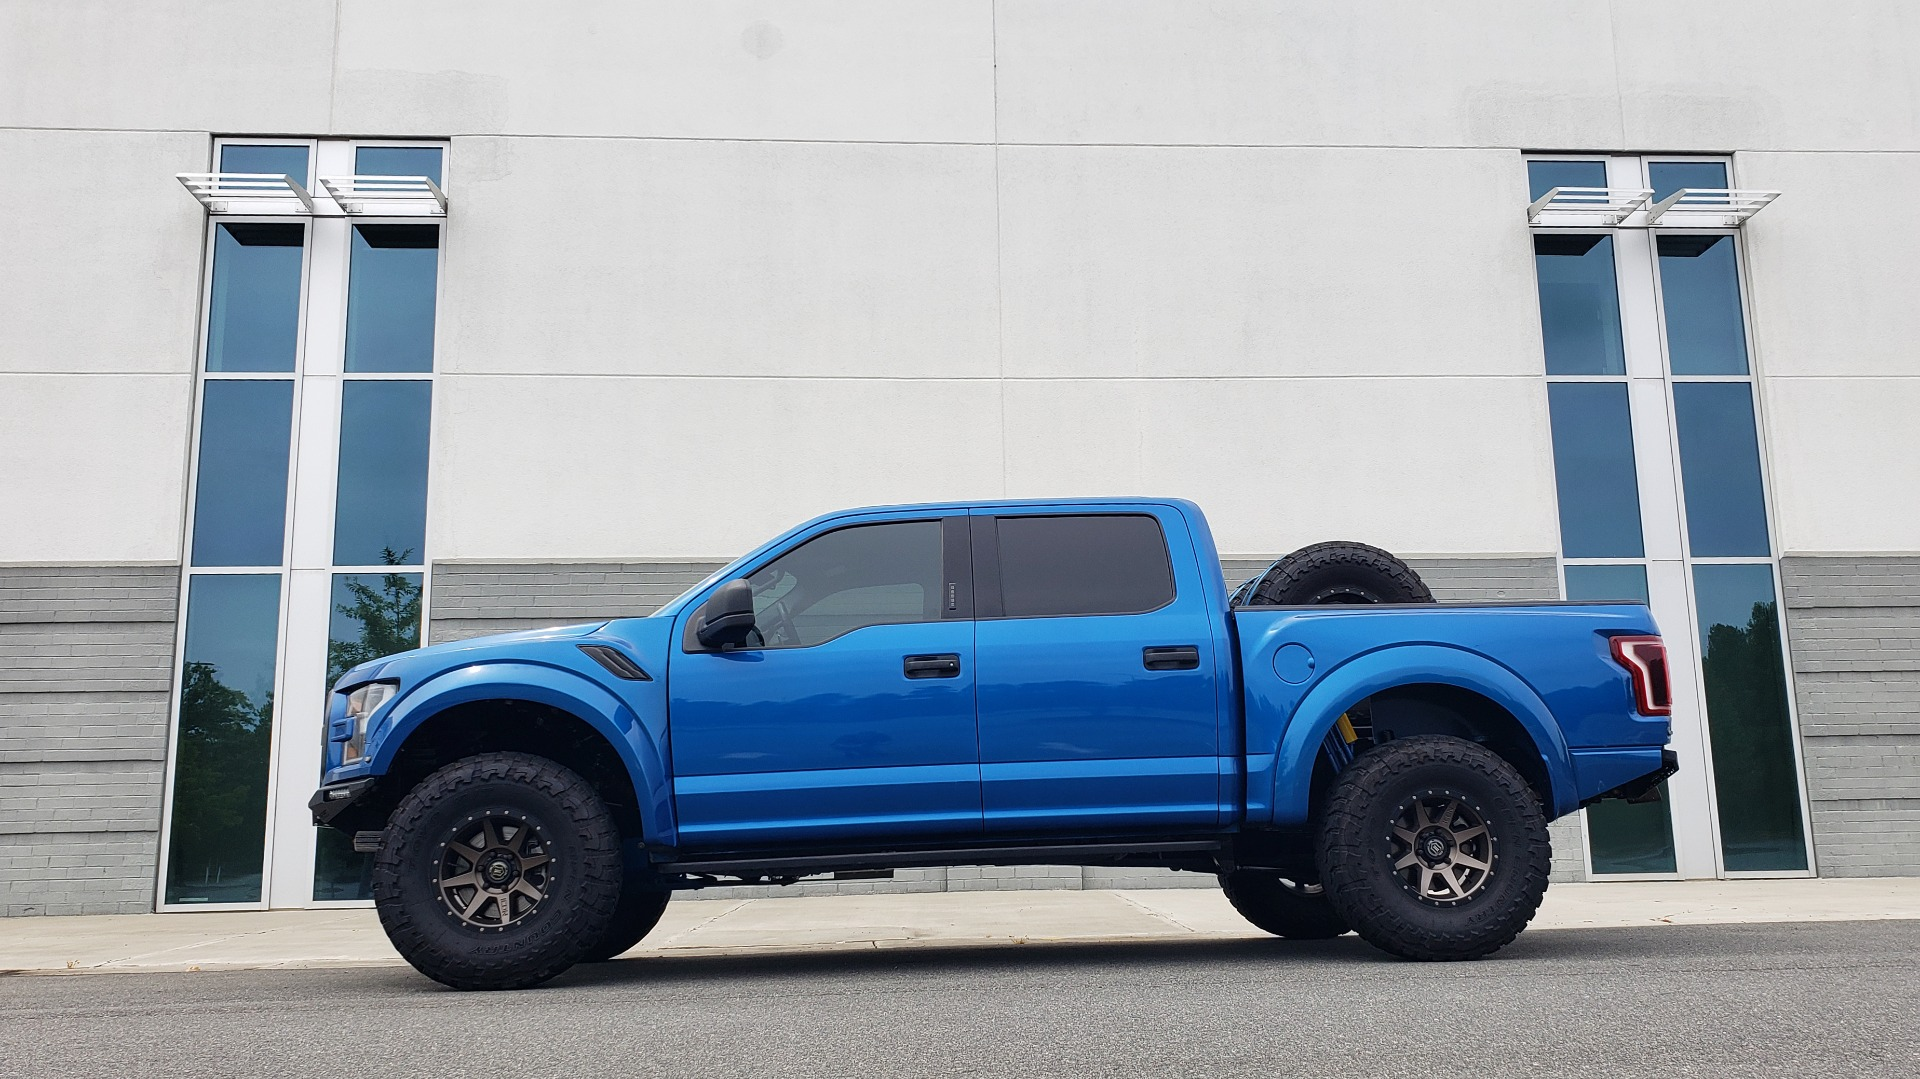 Used 2019 Ford F-150 RAPTOR 4X4 / CREWCAB / PRE-RUNNER CUSTOM SUSPENSION for sale $79,999 at Formula Imports in Charlotte NC 28227 5